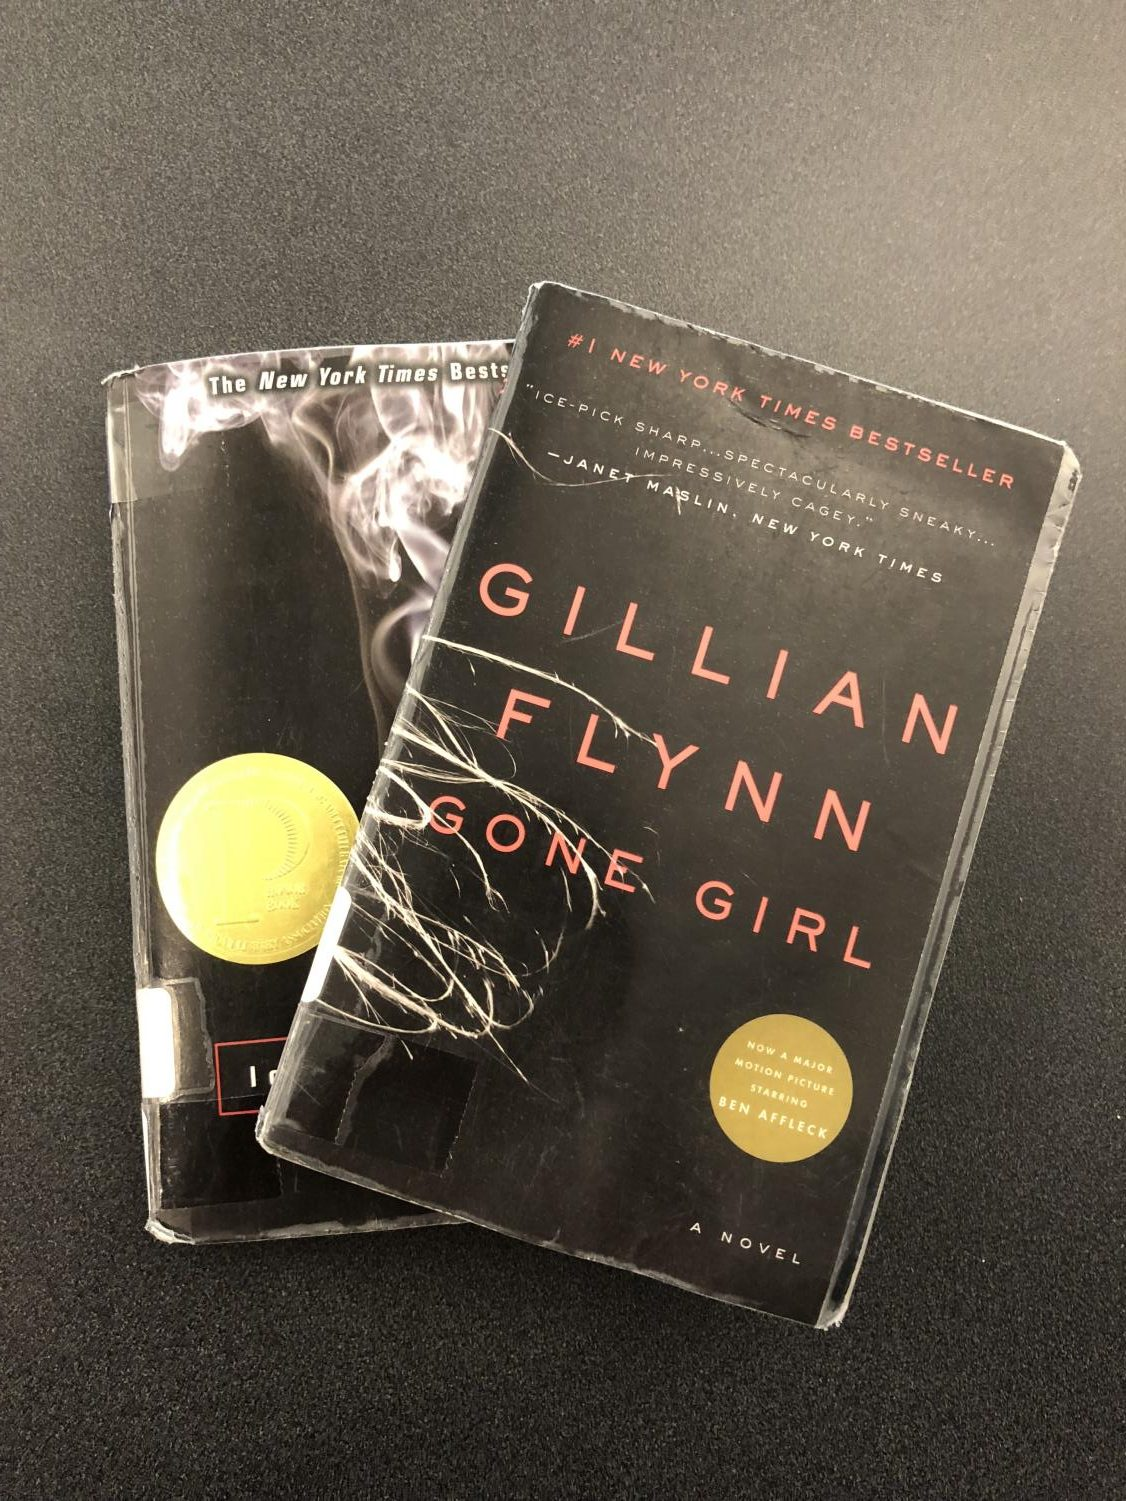 Looking for Alaska and Gone Girl are featured on the list.